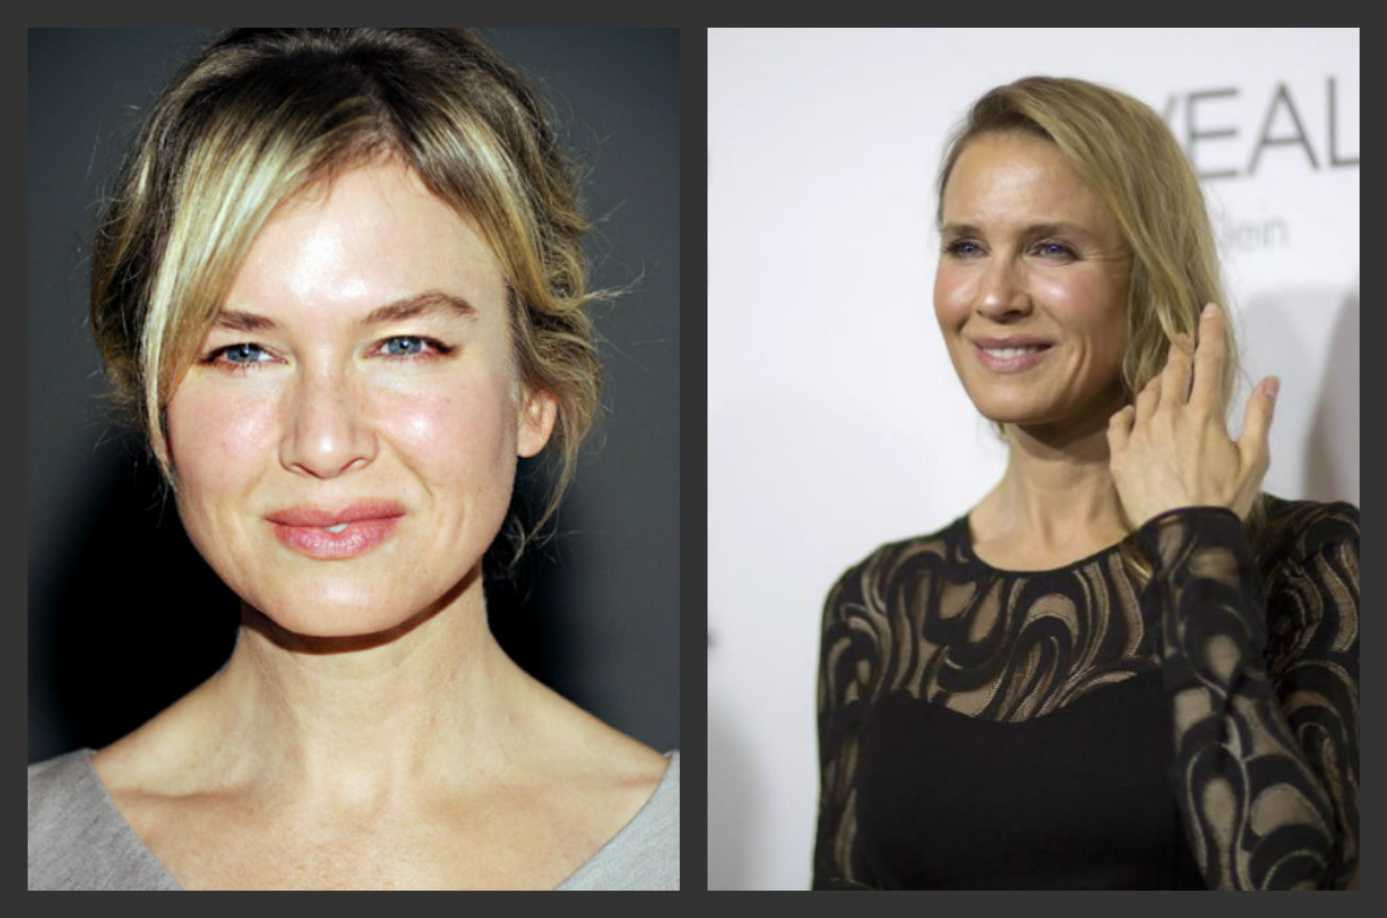 Renee Zellweger's Latest Public Appearance Sparks Plastic Surgery Rumors | Renee Zellweger